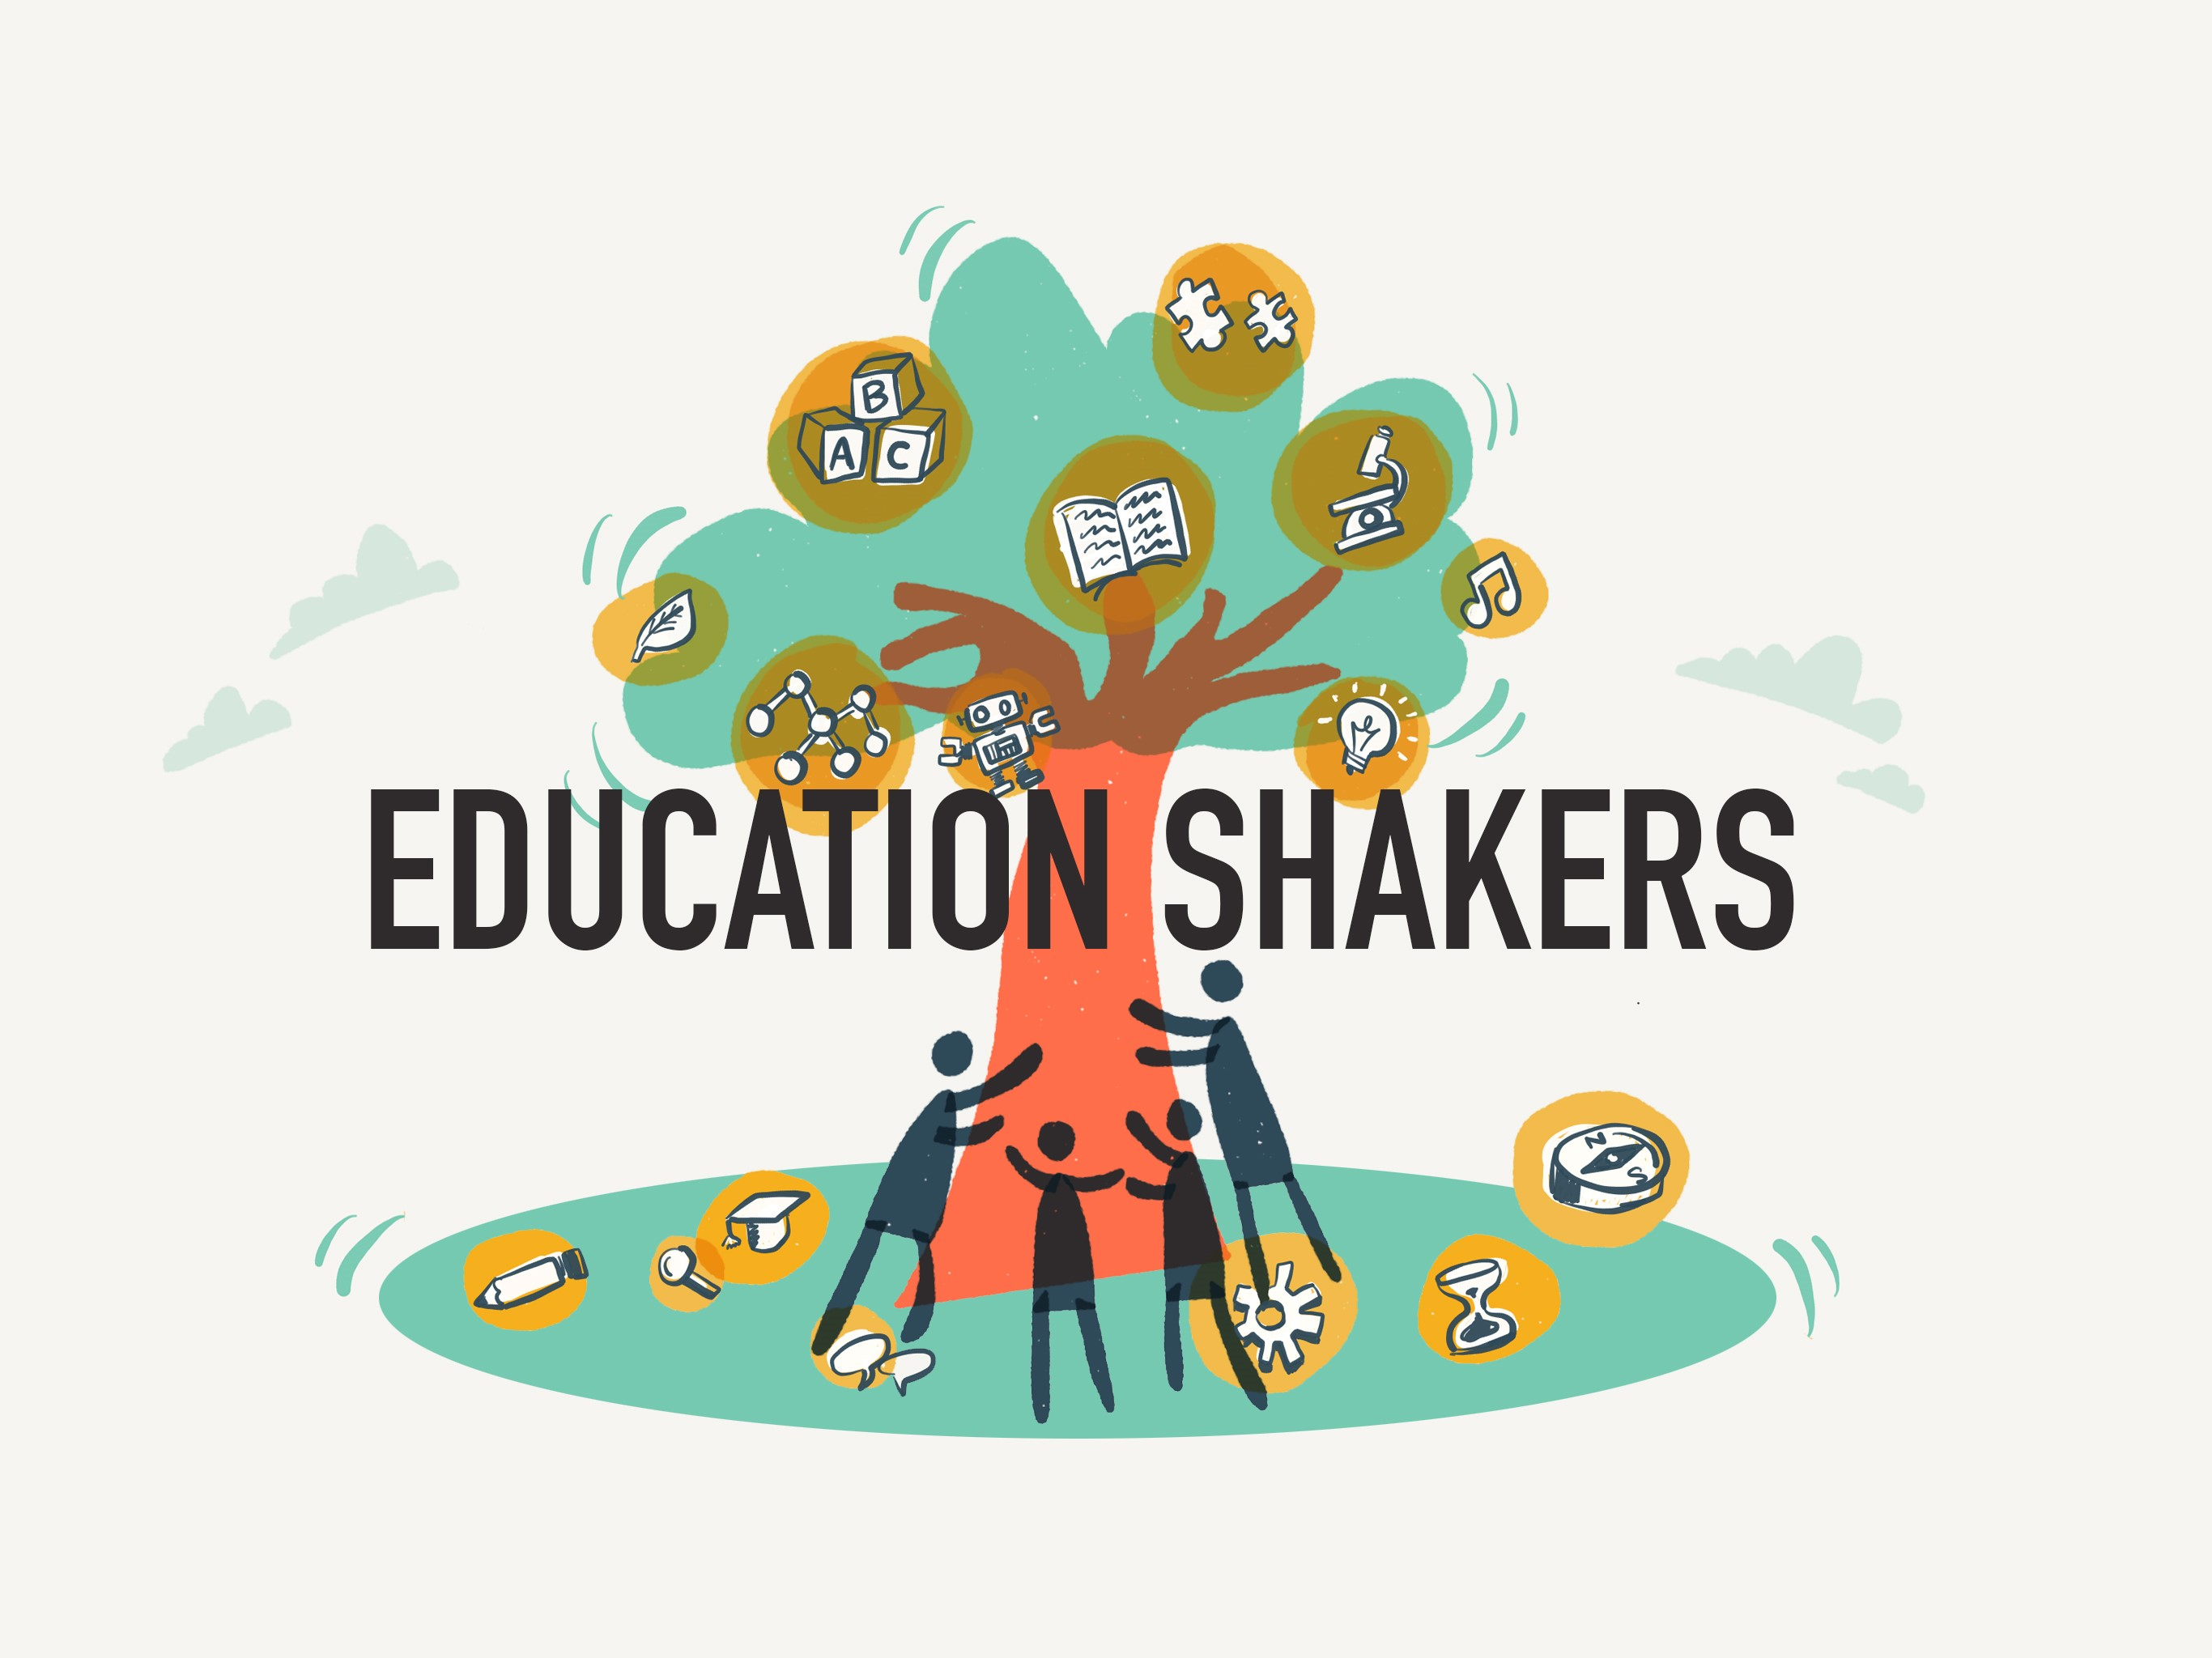 education_shakers_visual.jpg